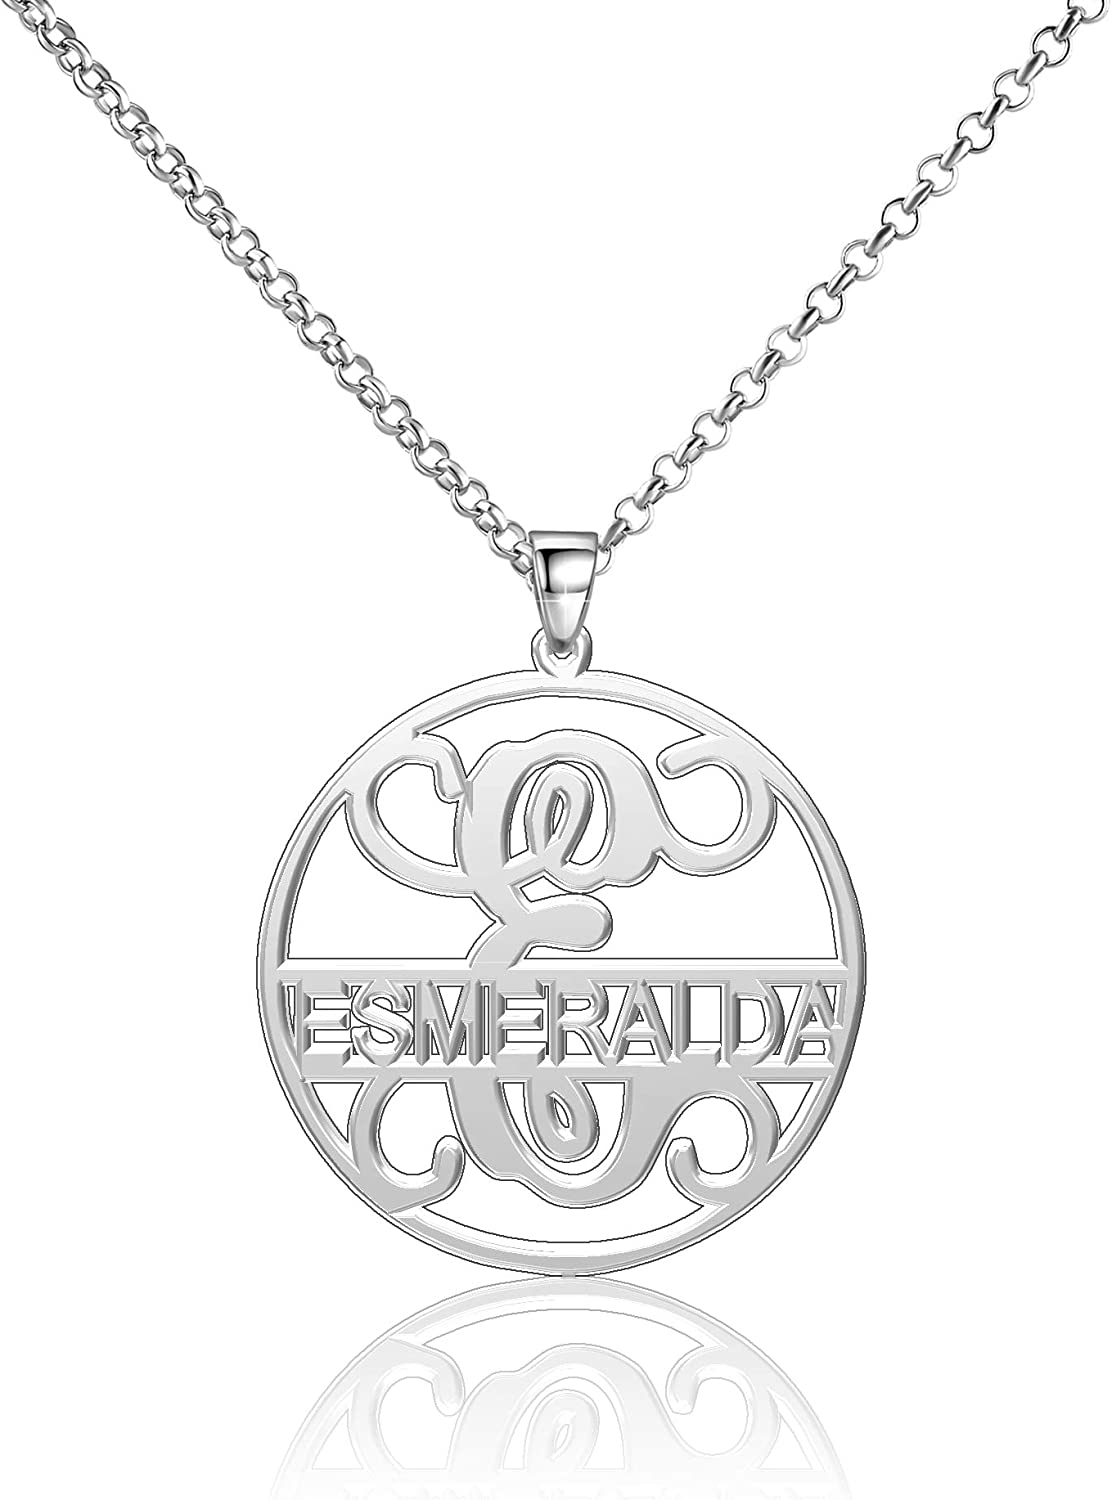 Moonlight Collections Esmeralda Necklace Name Necklace Sterling Silver